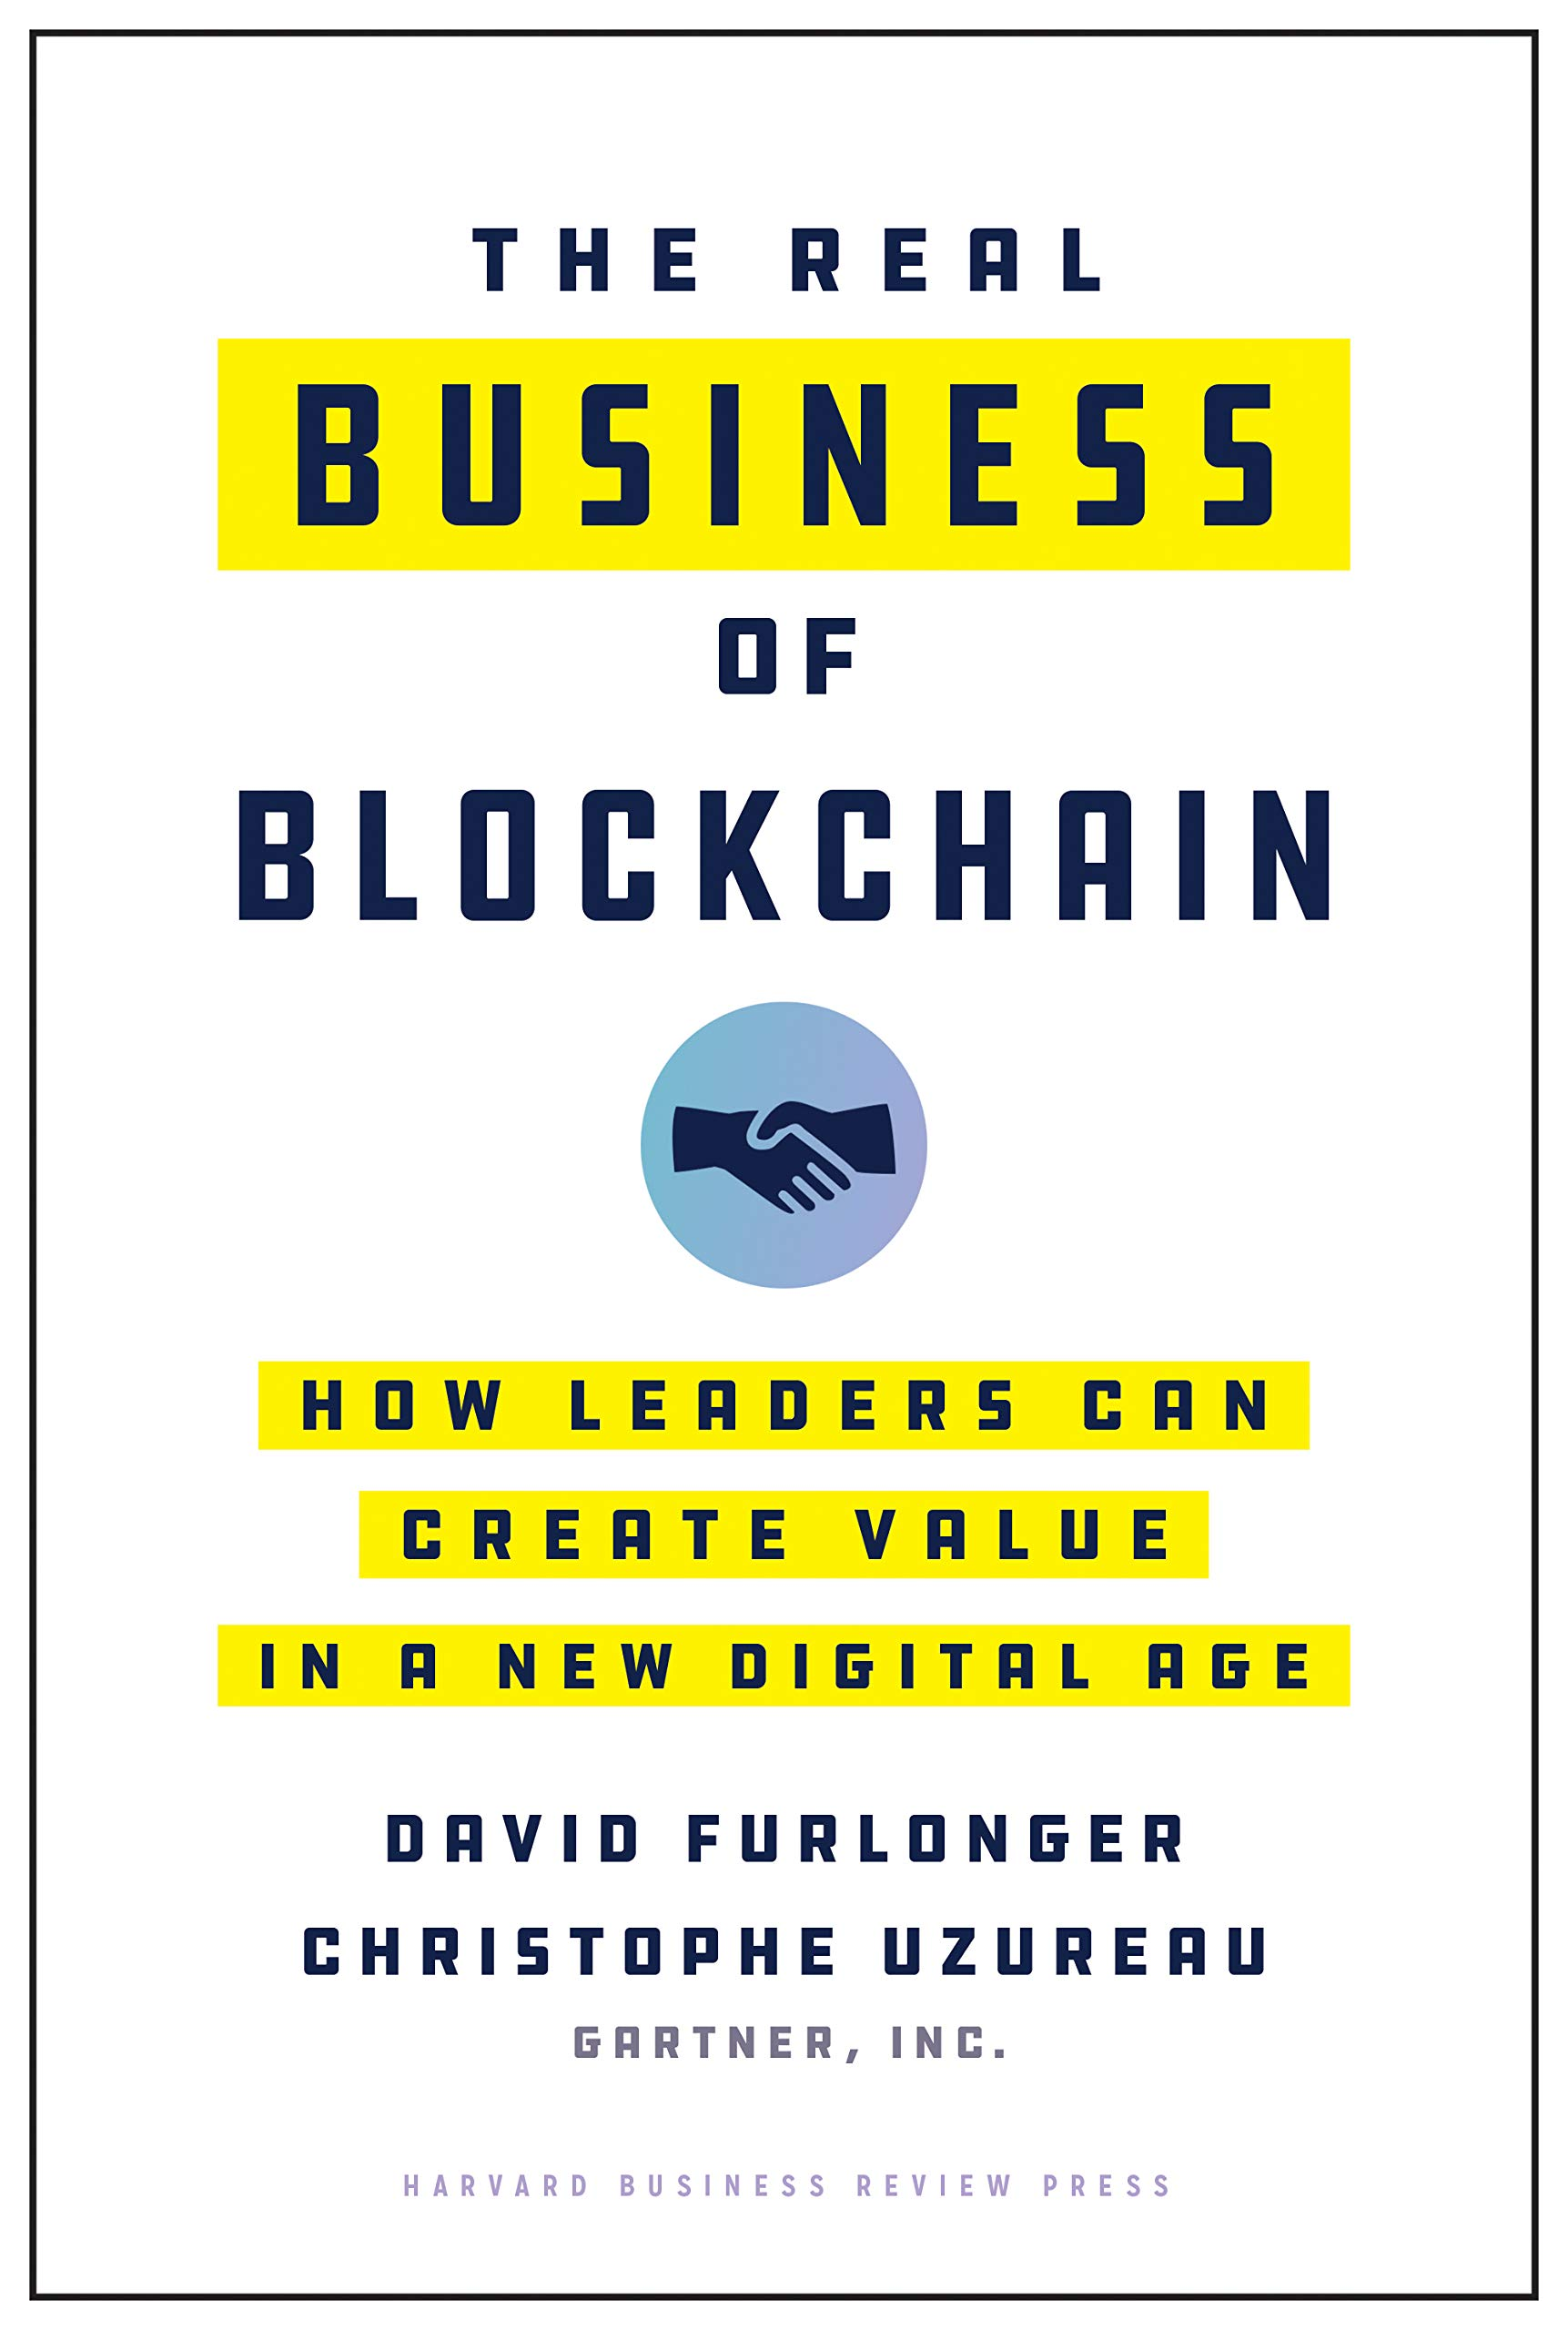 Image OfThe Real Business Of Blockchain: How Leaders Can Create Value In A New Digital Age